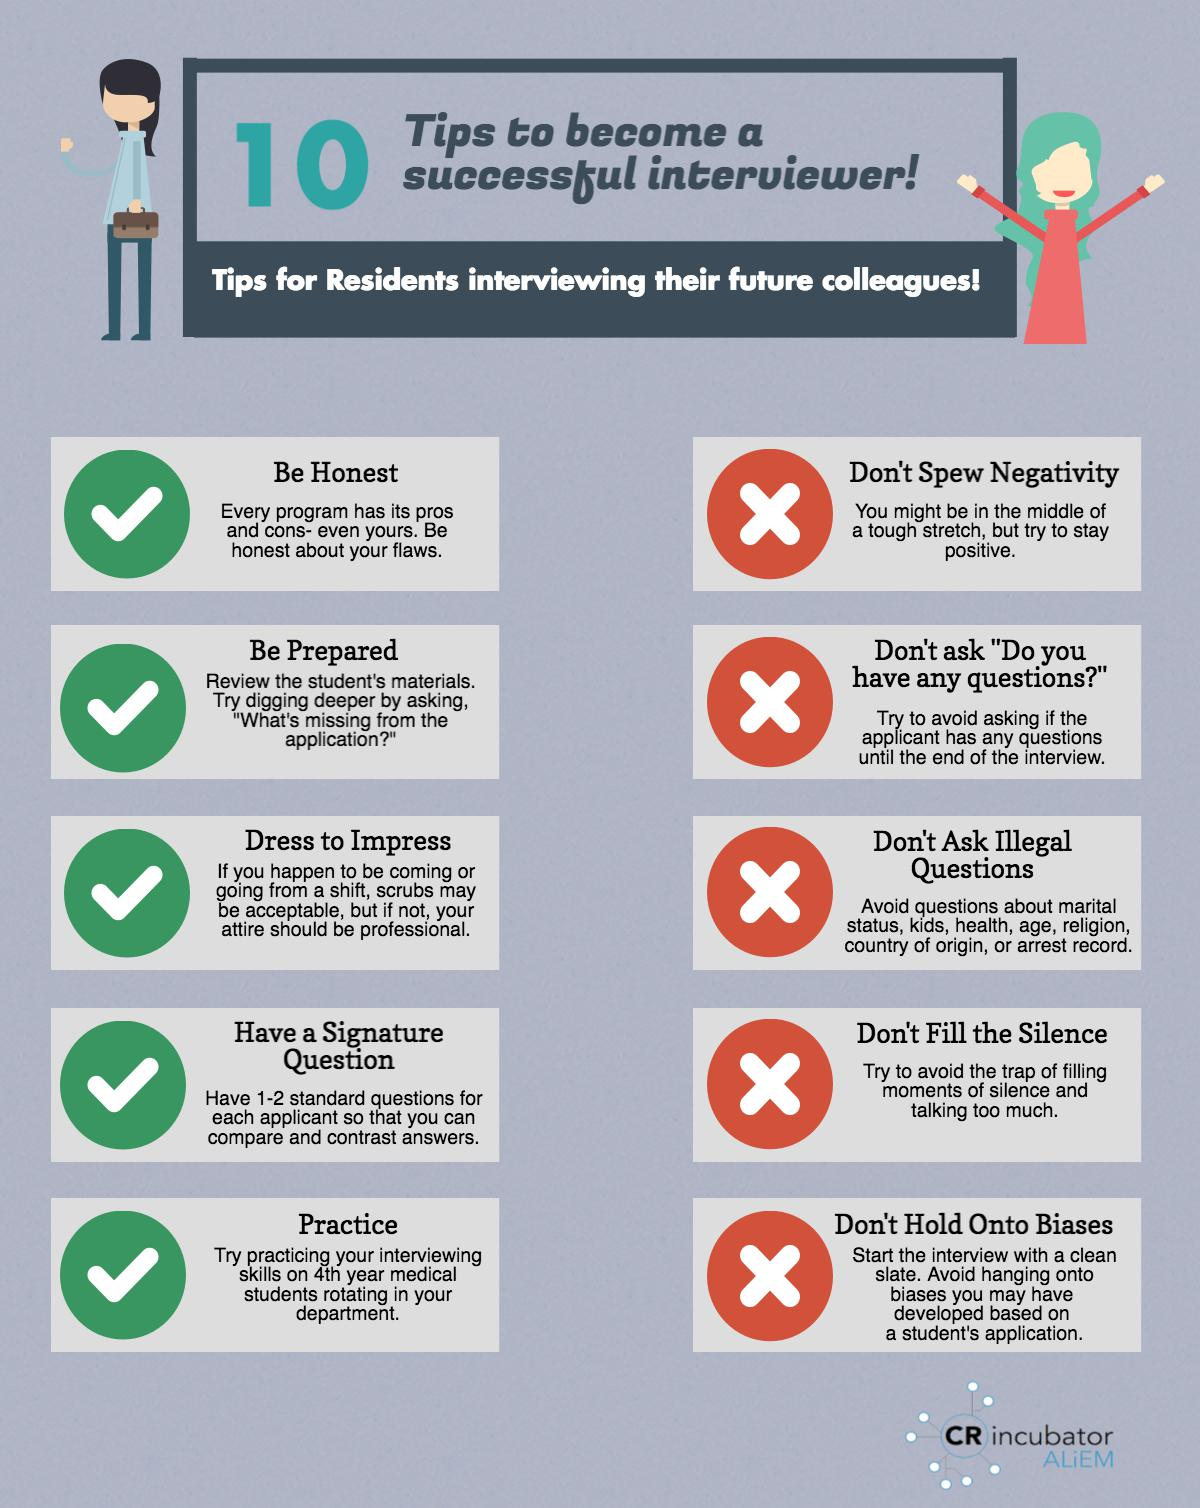 10 Tips to Become a Successful Interviewer: Do's and Don'ts